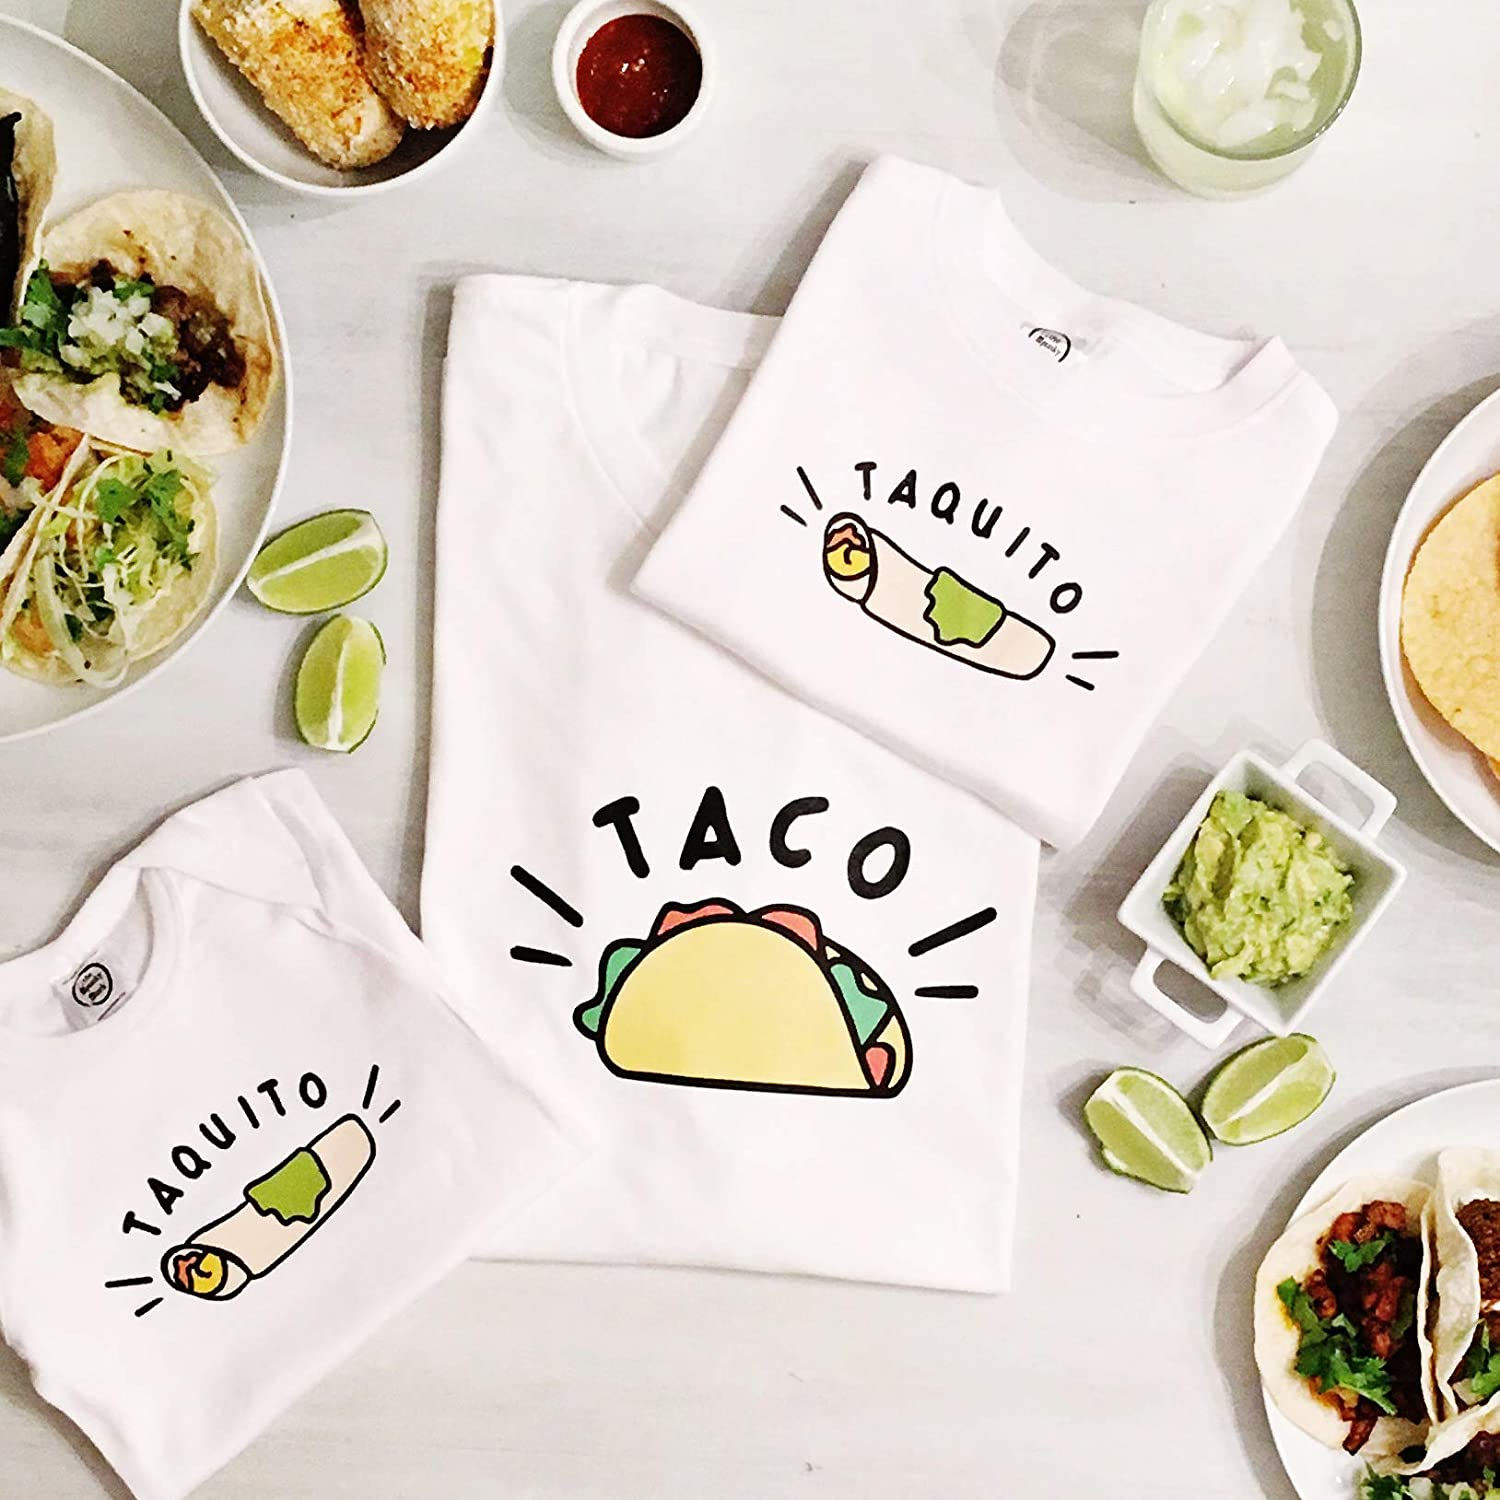 The Spunky Stork Taco /& Taquito Matching Baby Toddler T Shirts Each Sold Separately Siblings or Daddy /& Me